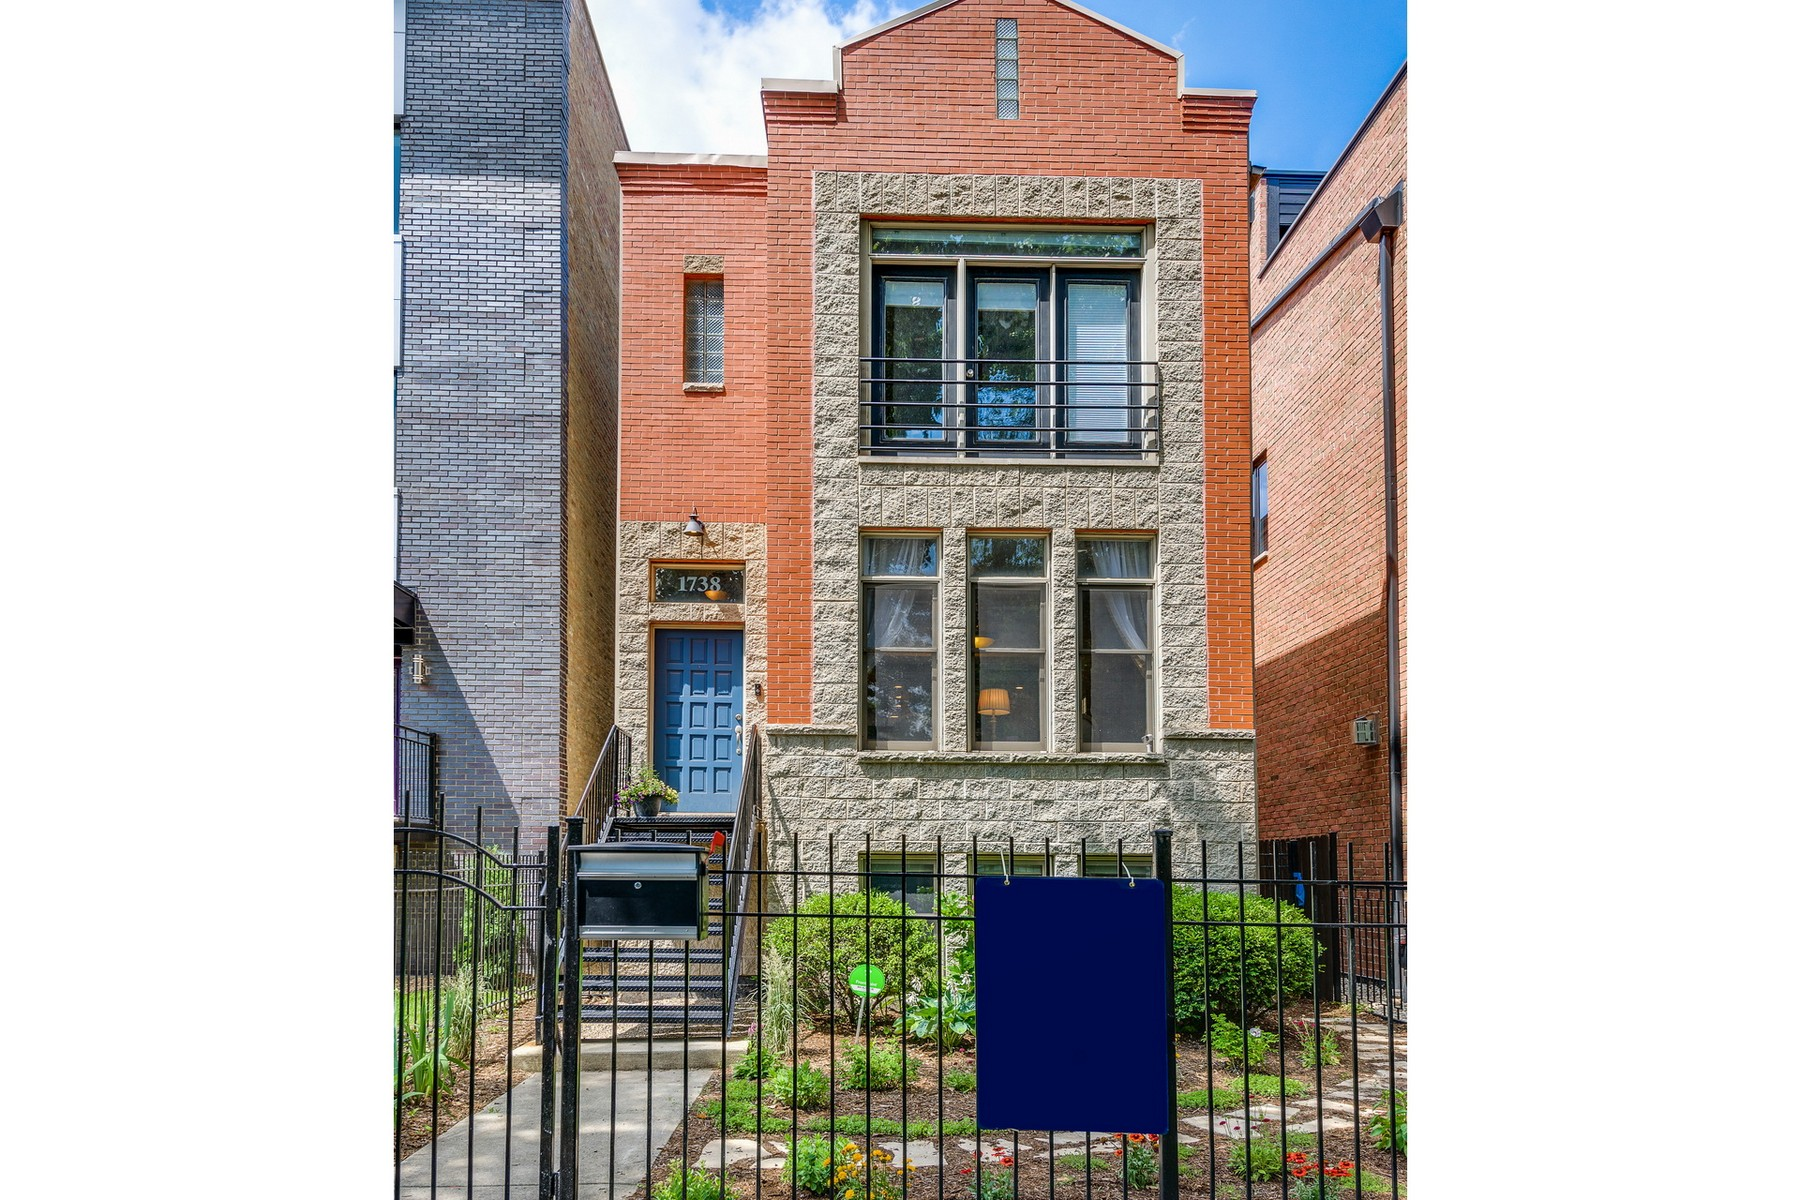 Single Family Home for Sale at Hard To Find - Ukrainian Village Single Family Home 1738 W Erie Street West Town, Chicago, Illinois, 60622 United States